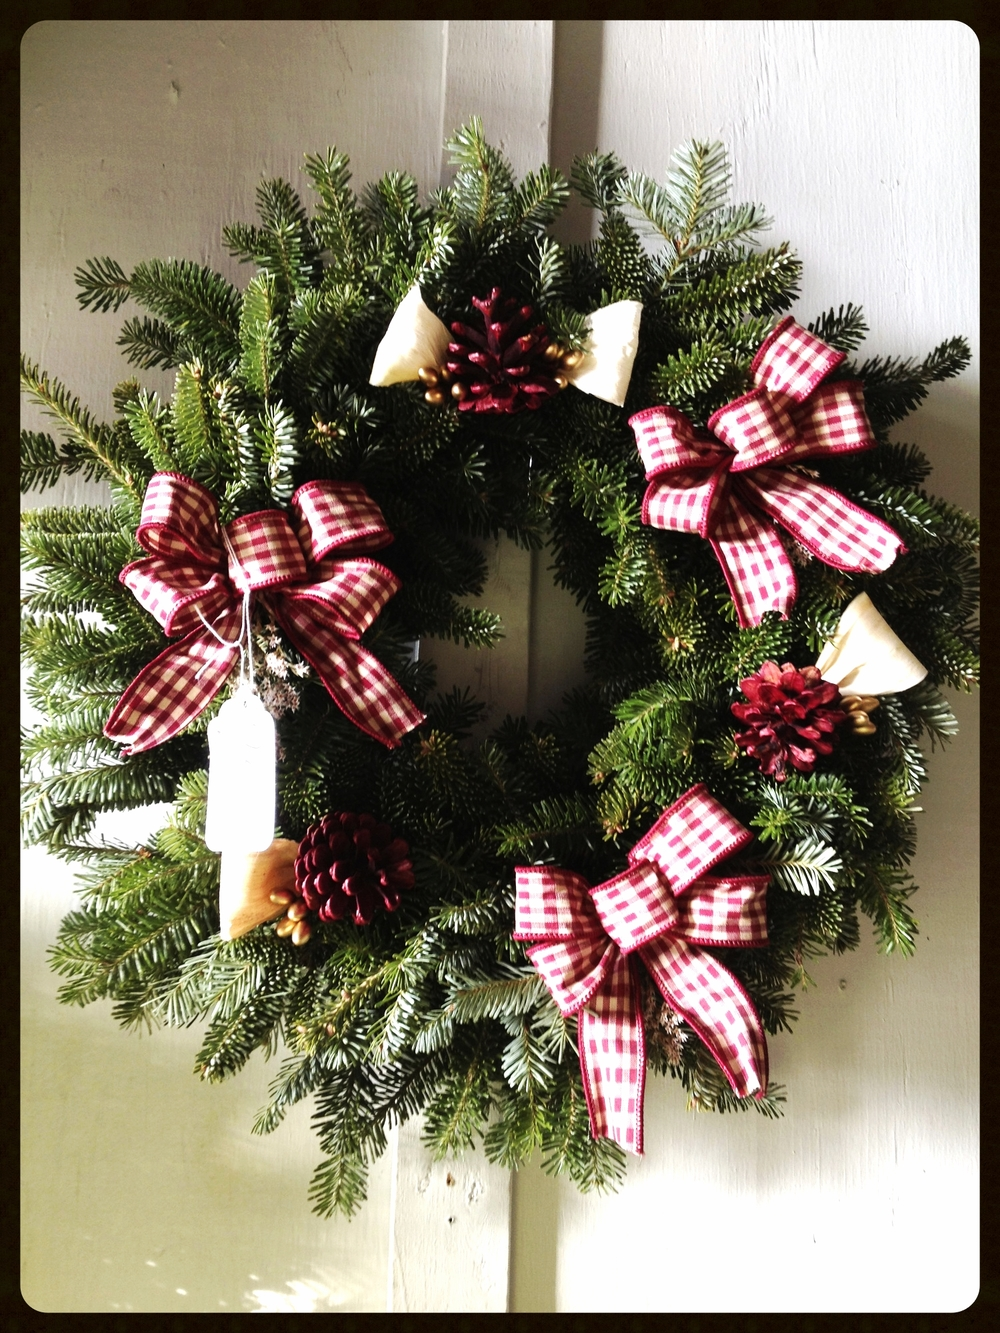 - We have a large variety of wreaths and swag!